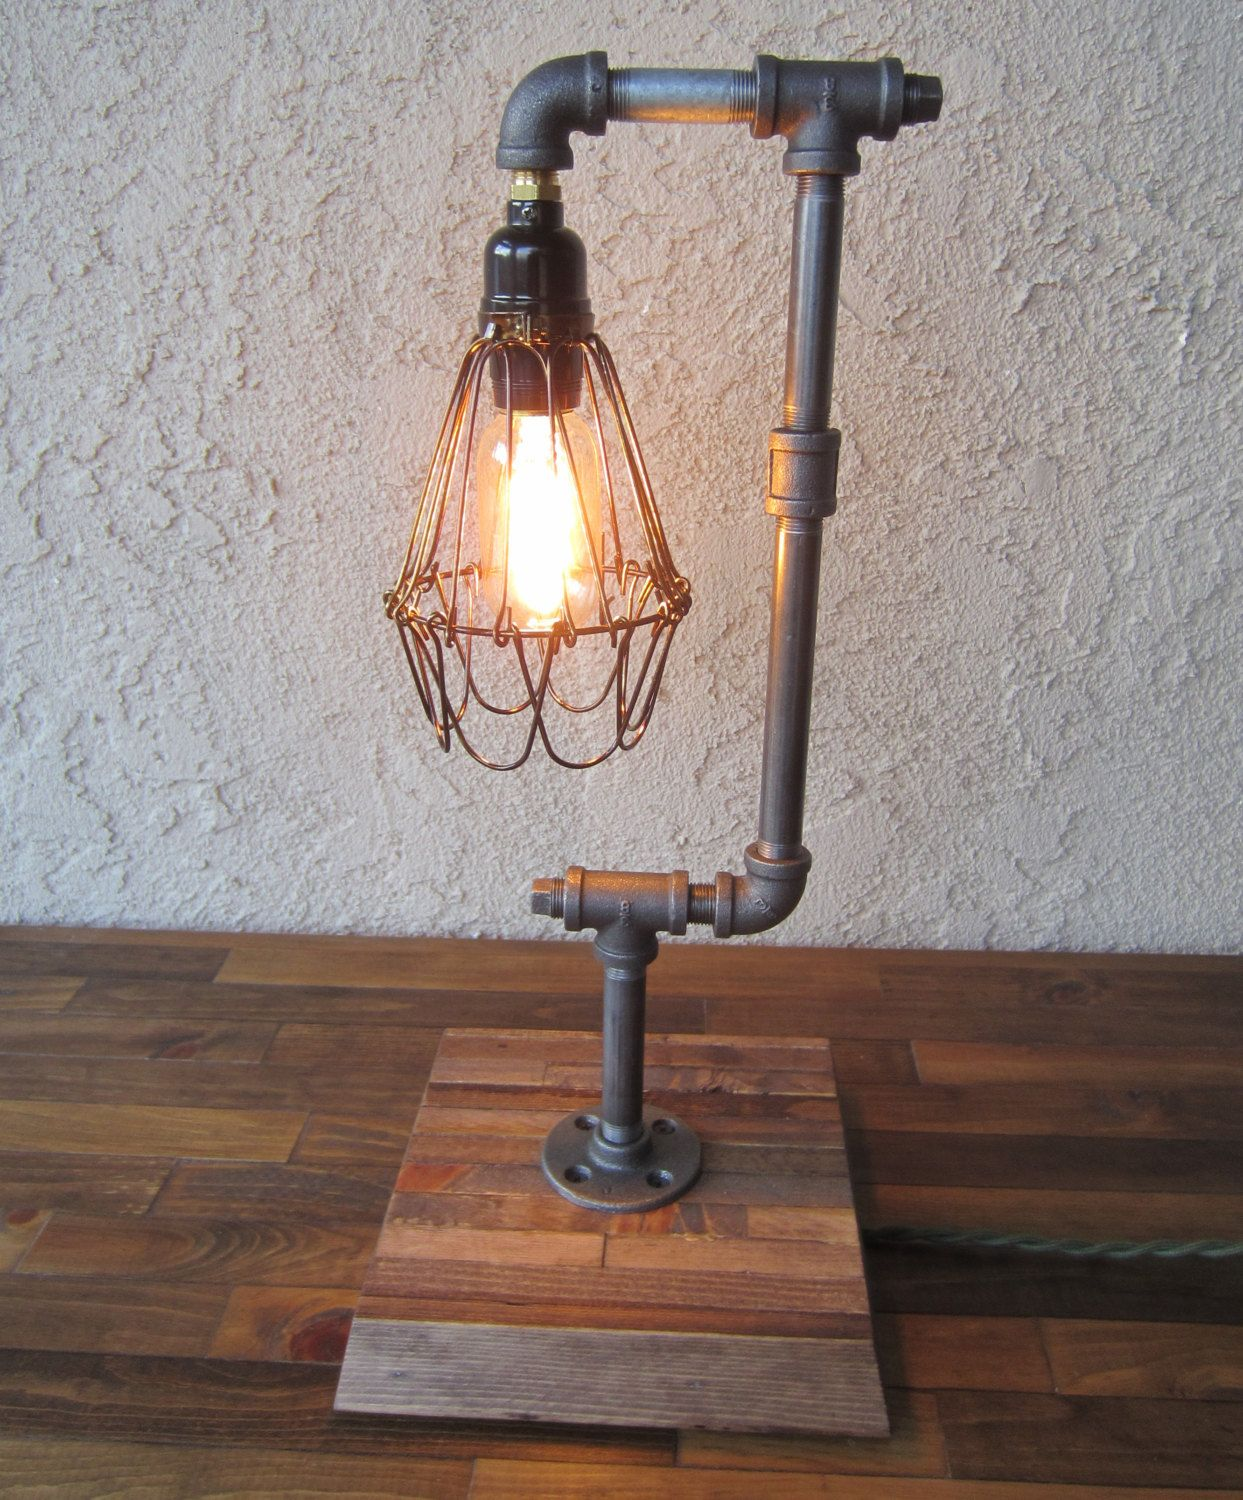 Awesome Edison Trouble Light Desk Lamp Vertical, Pipe, Reclaimed Wood Base   BULB  INCLUDED / Vintage Industrial Lamp / Steampunk Light / Table Lamp